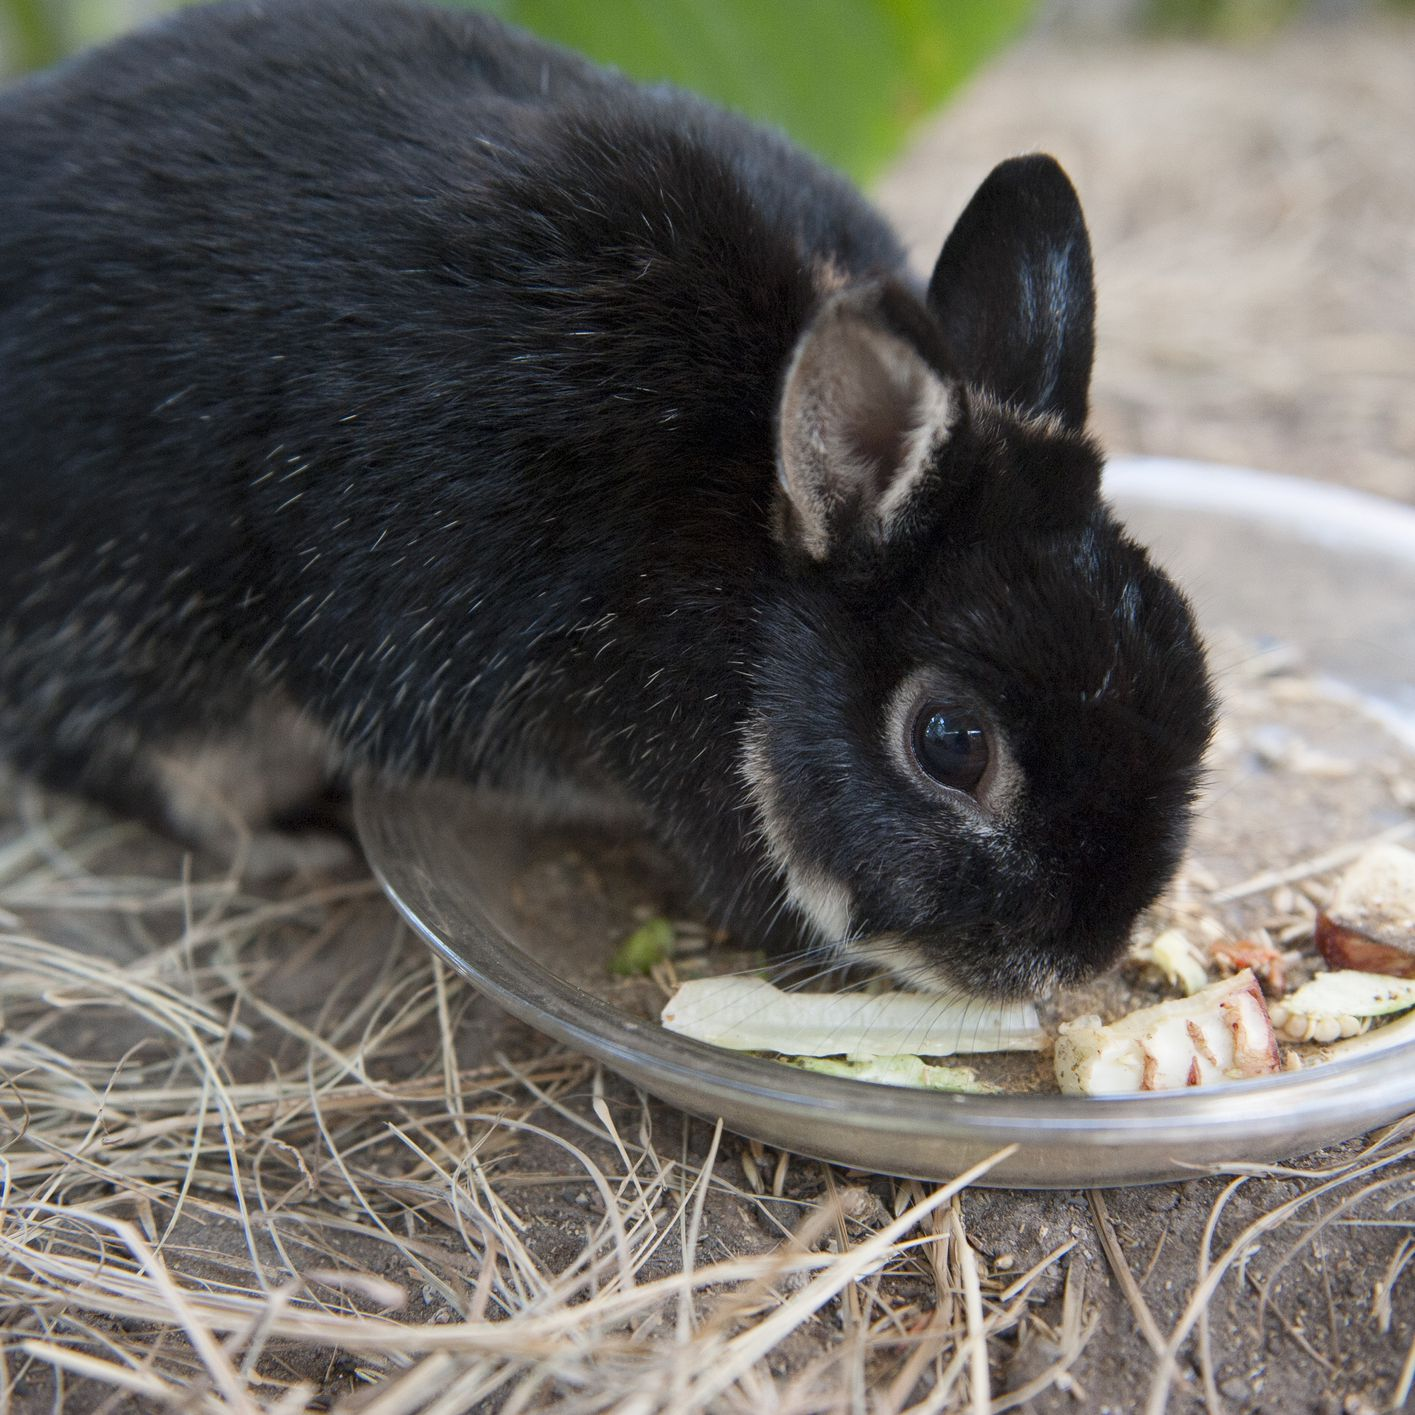 do all rabbits have the same diet